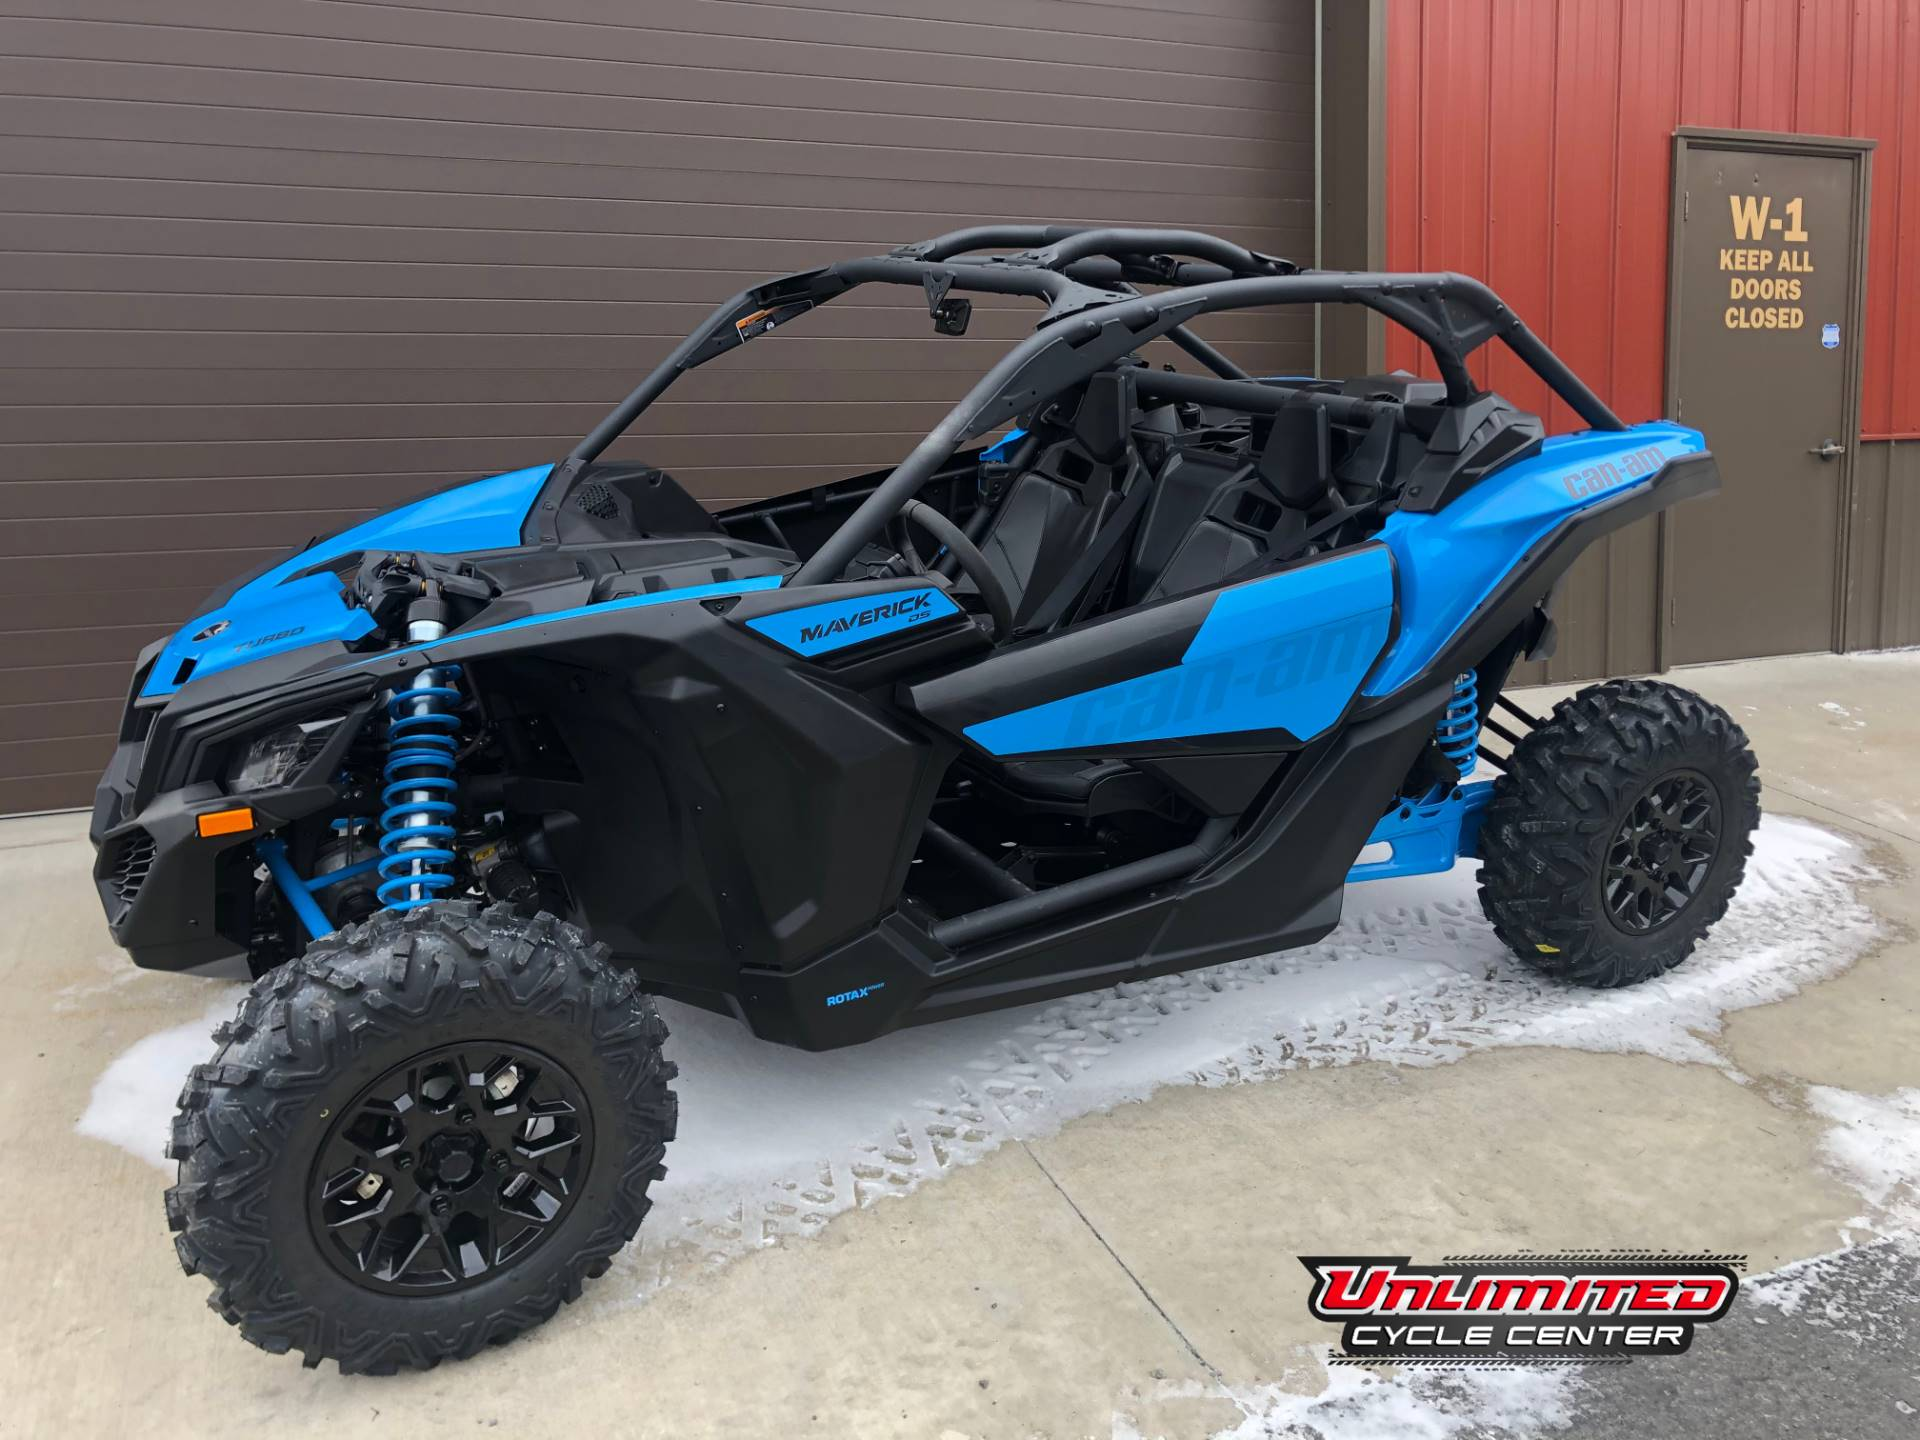 2021 Can-Am Maverick X3 DS Turbo in Tyrone, Pennsylvania - Photo 1